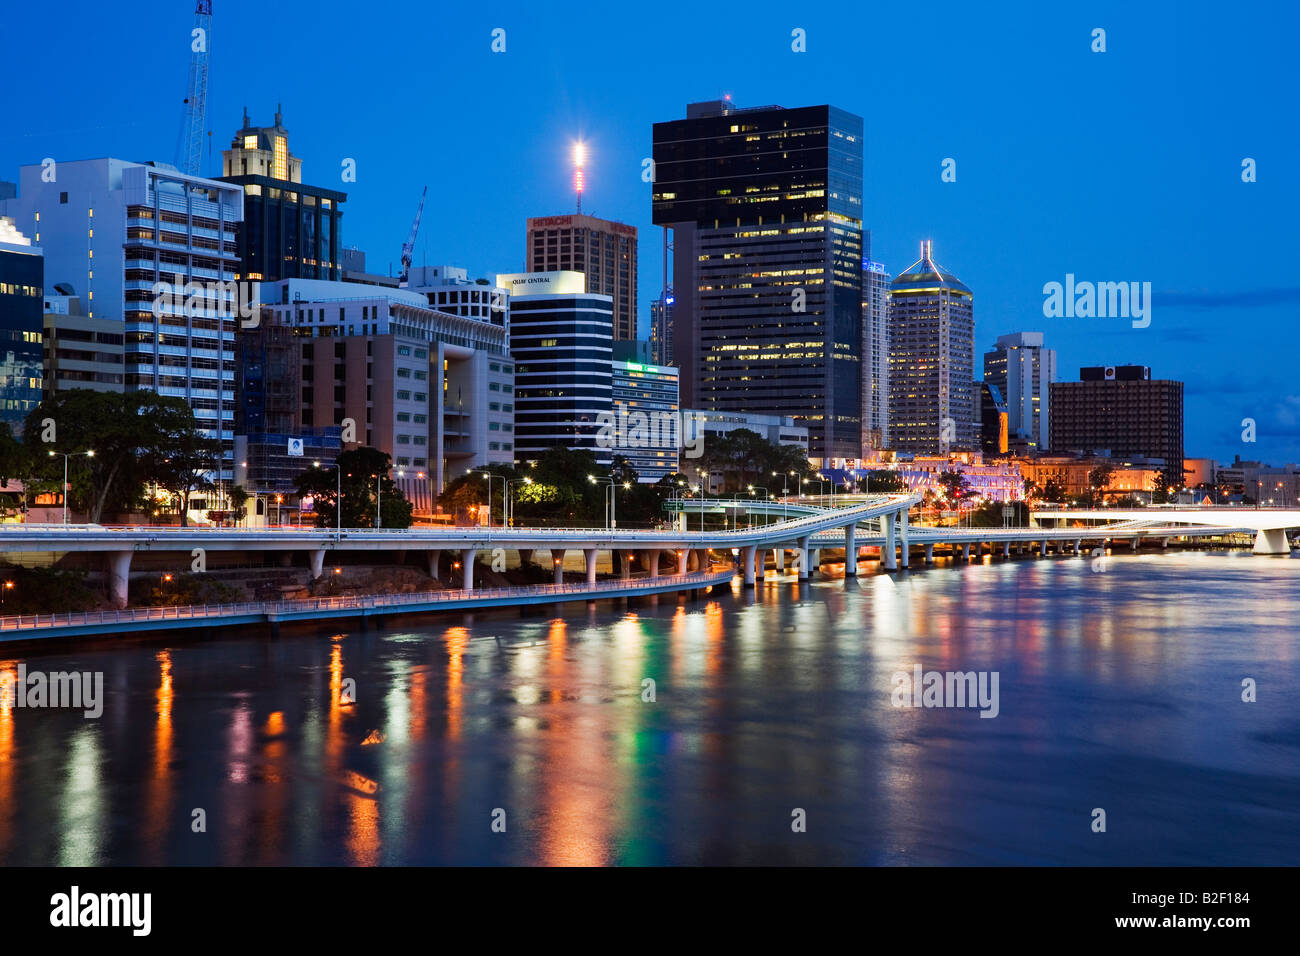 View along the Brisbane riverside to the central business district - Brisbane, Queensland, AUSTRALIA - Stock Image